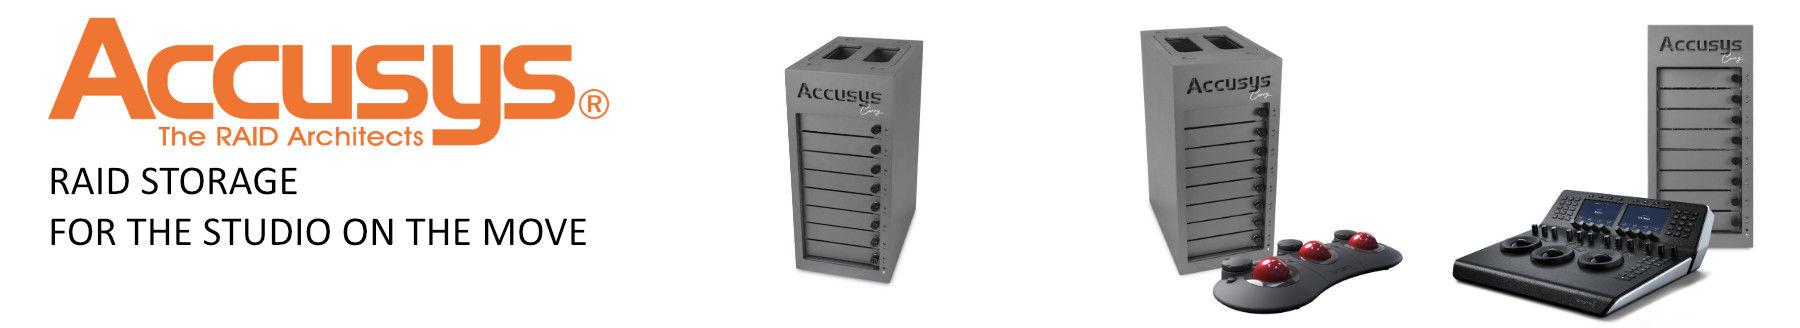 Accusys is cutting-edge solutions centralized on PCIe Raid and Thunderbolt technologies.